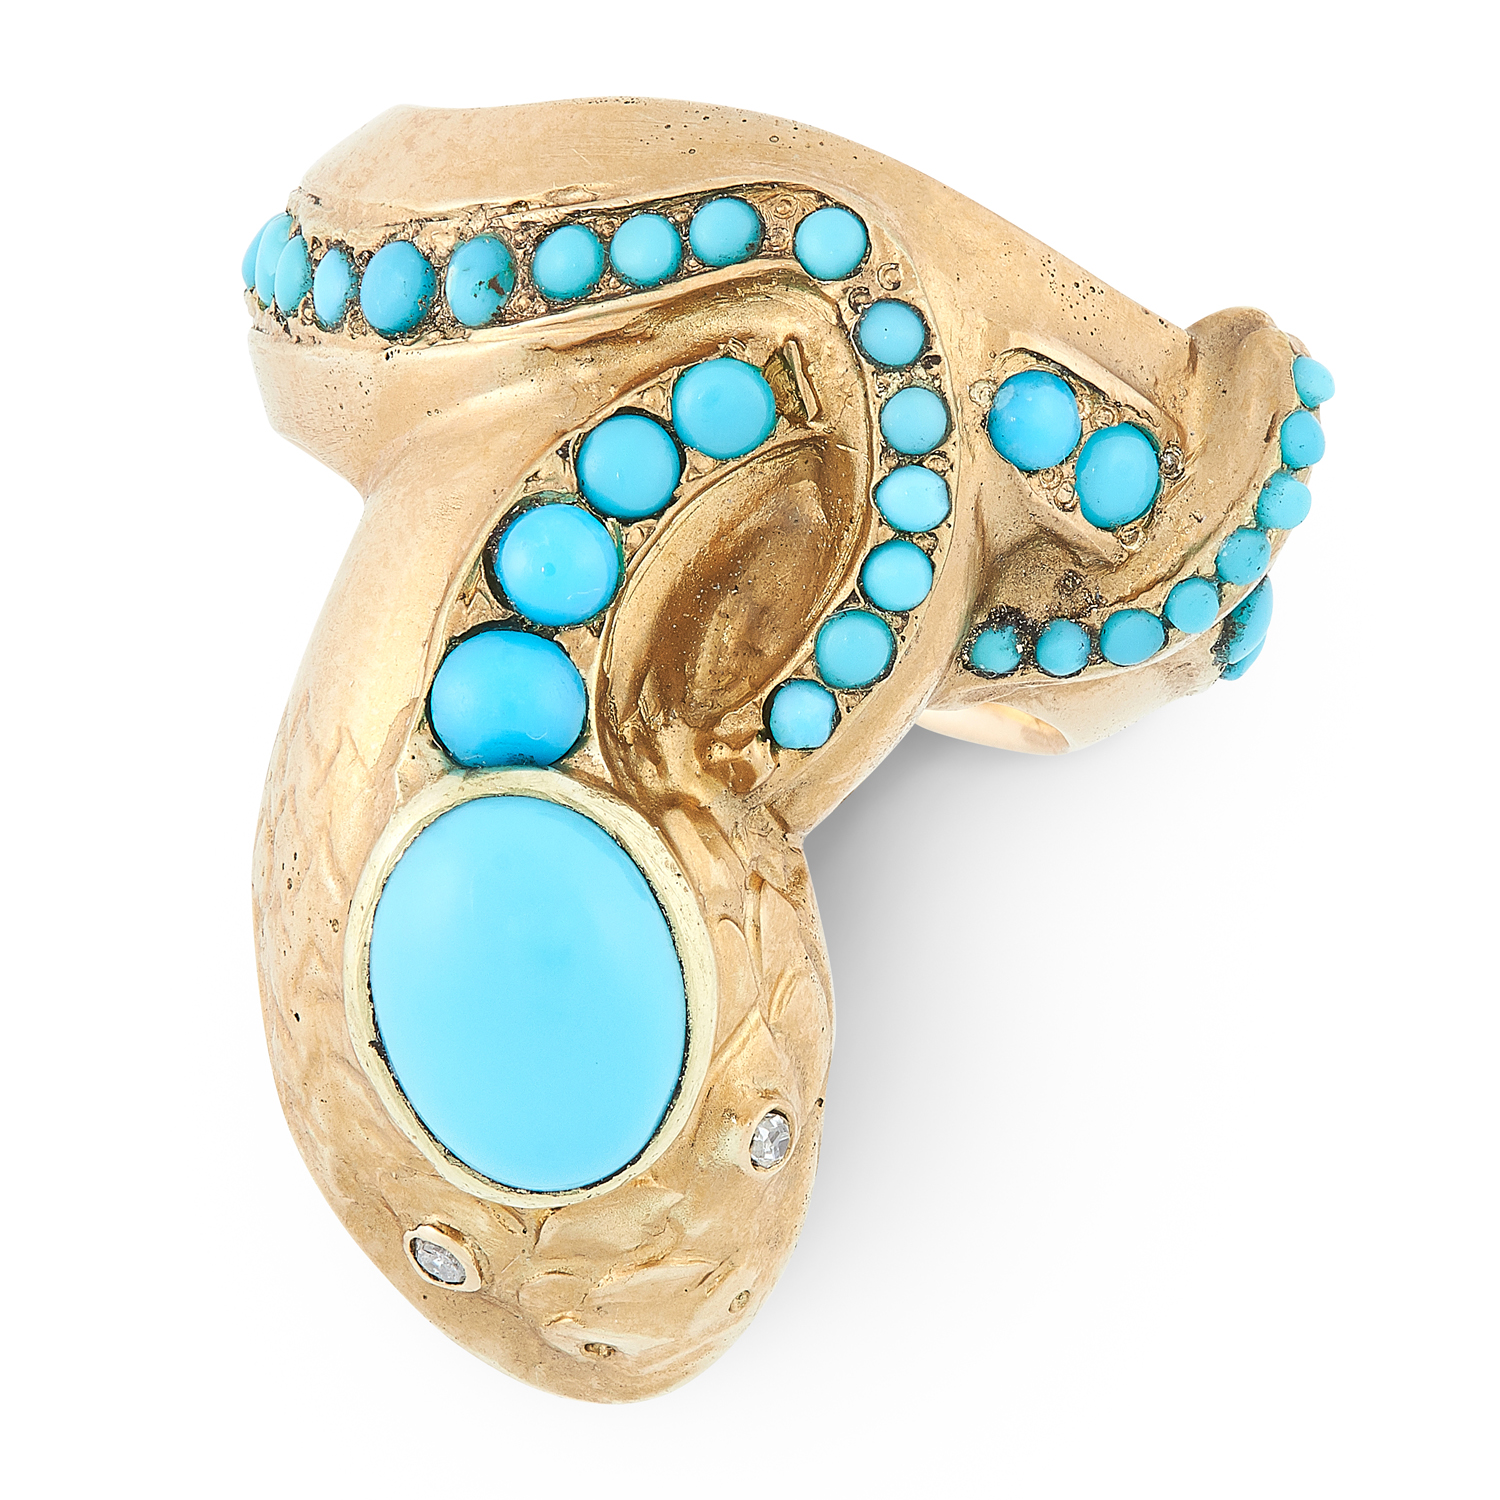 AN ANTIQUE TURQUOISE AND DIAMOND SNAKE RING, LATE 19TH CENTURY in high carat yellow gold, designed - Image 2 of 2